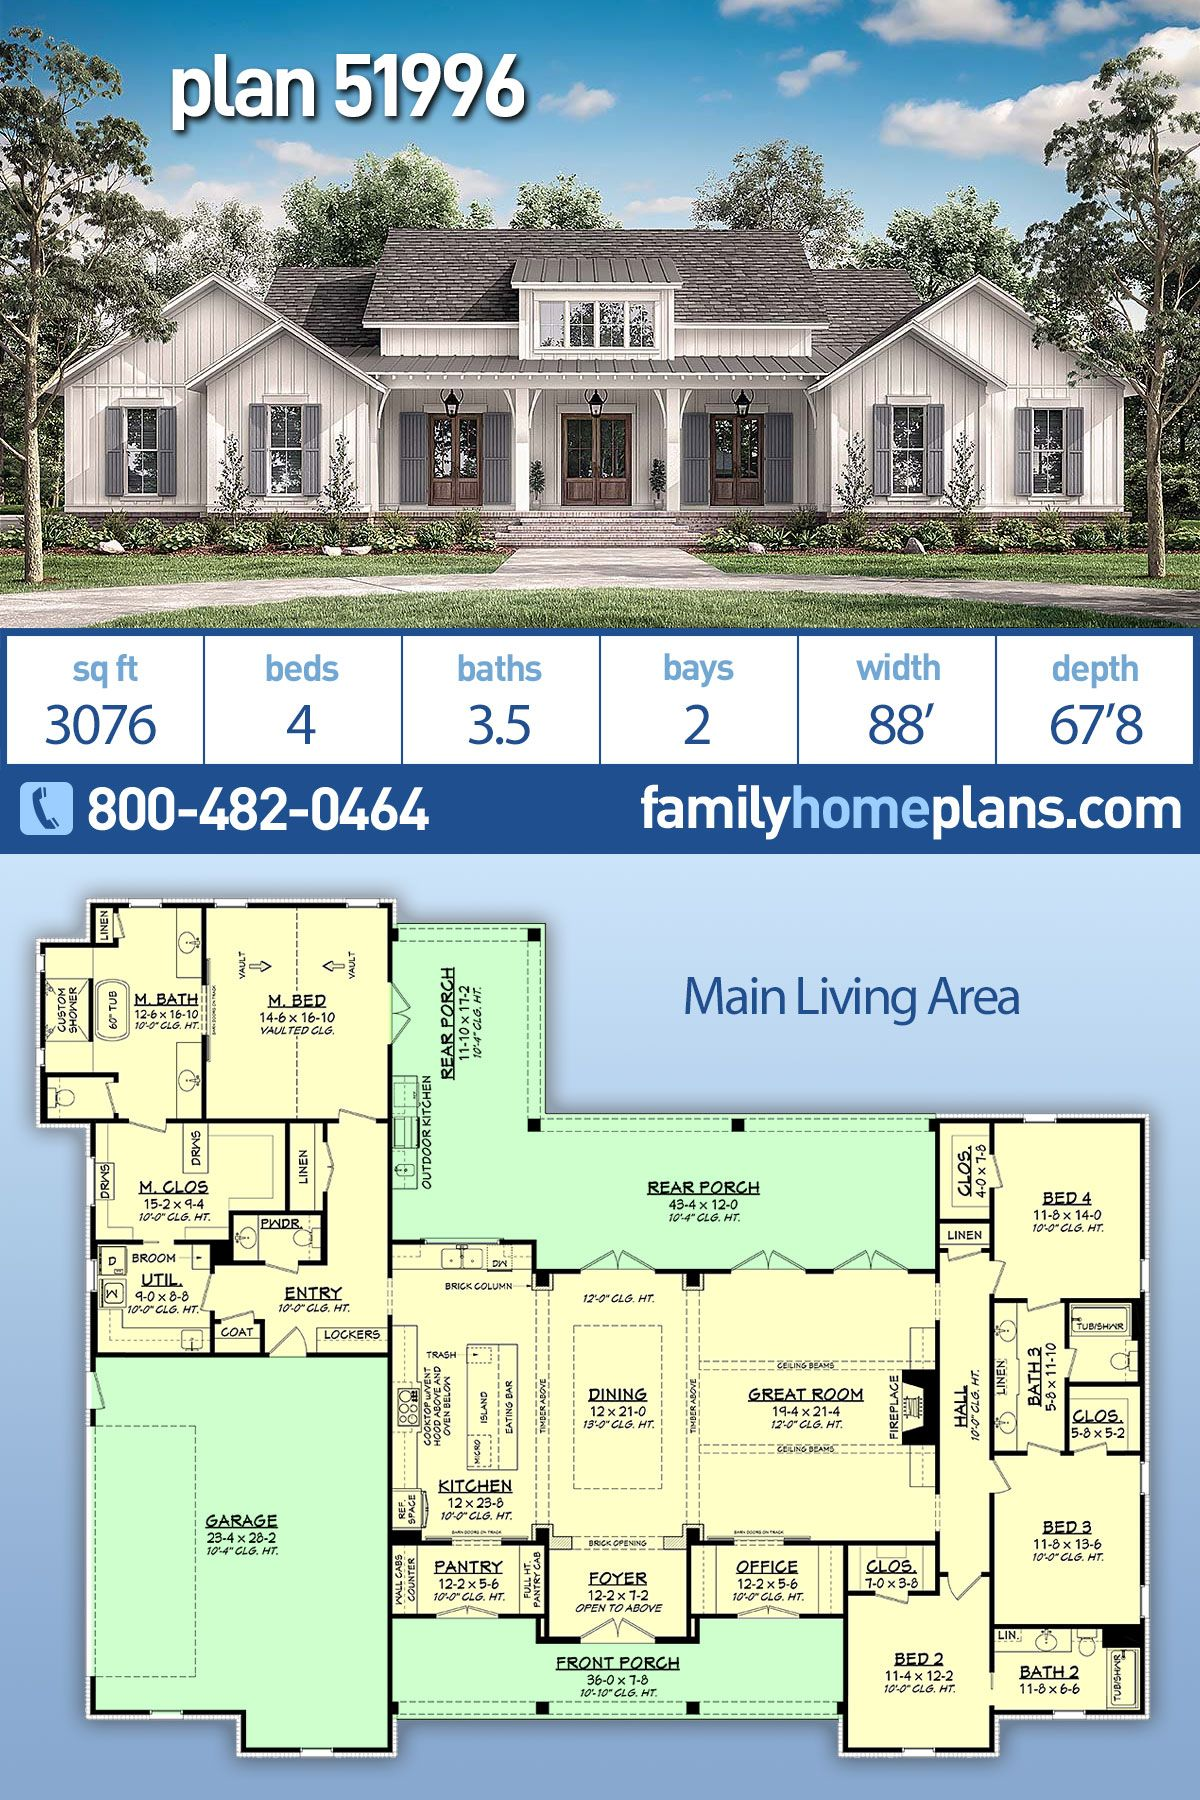 Farmhouse Style House Plan 51996 With 4 Bed 4 Bath 2 Car Garage Family House Plans Country Style House Plans Farmhouse Style House